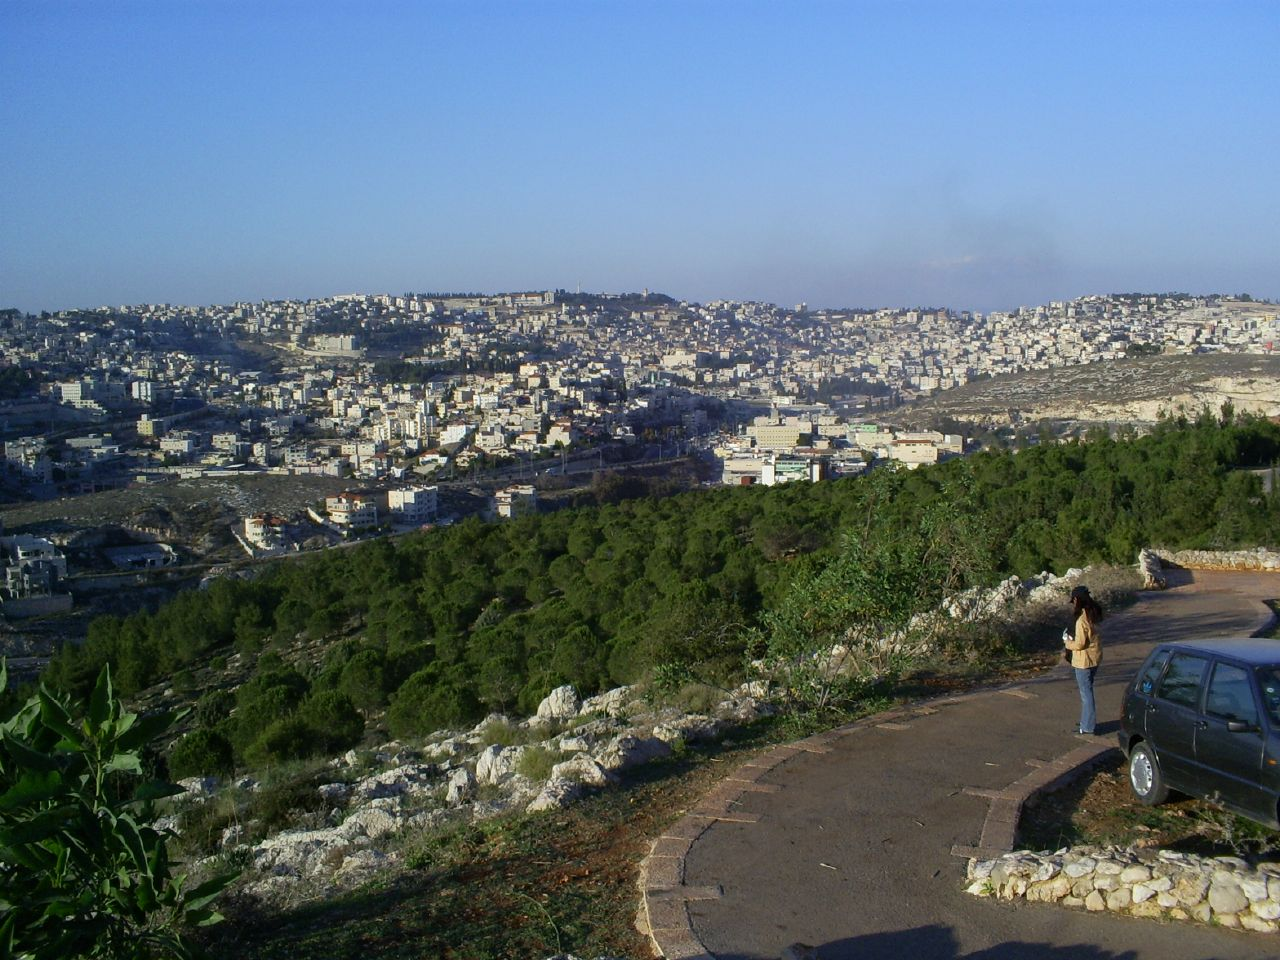 Nazareth - الناصرة : general view for the city